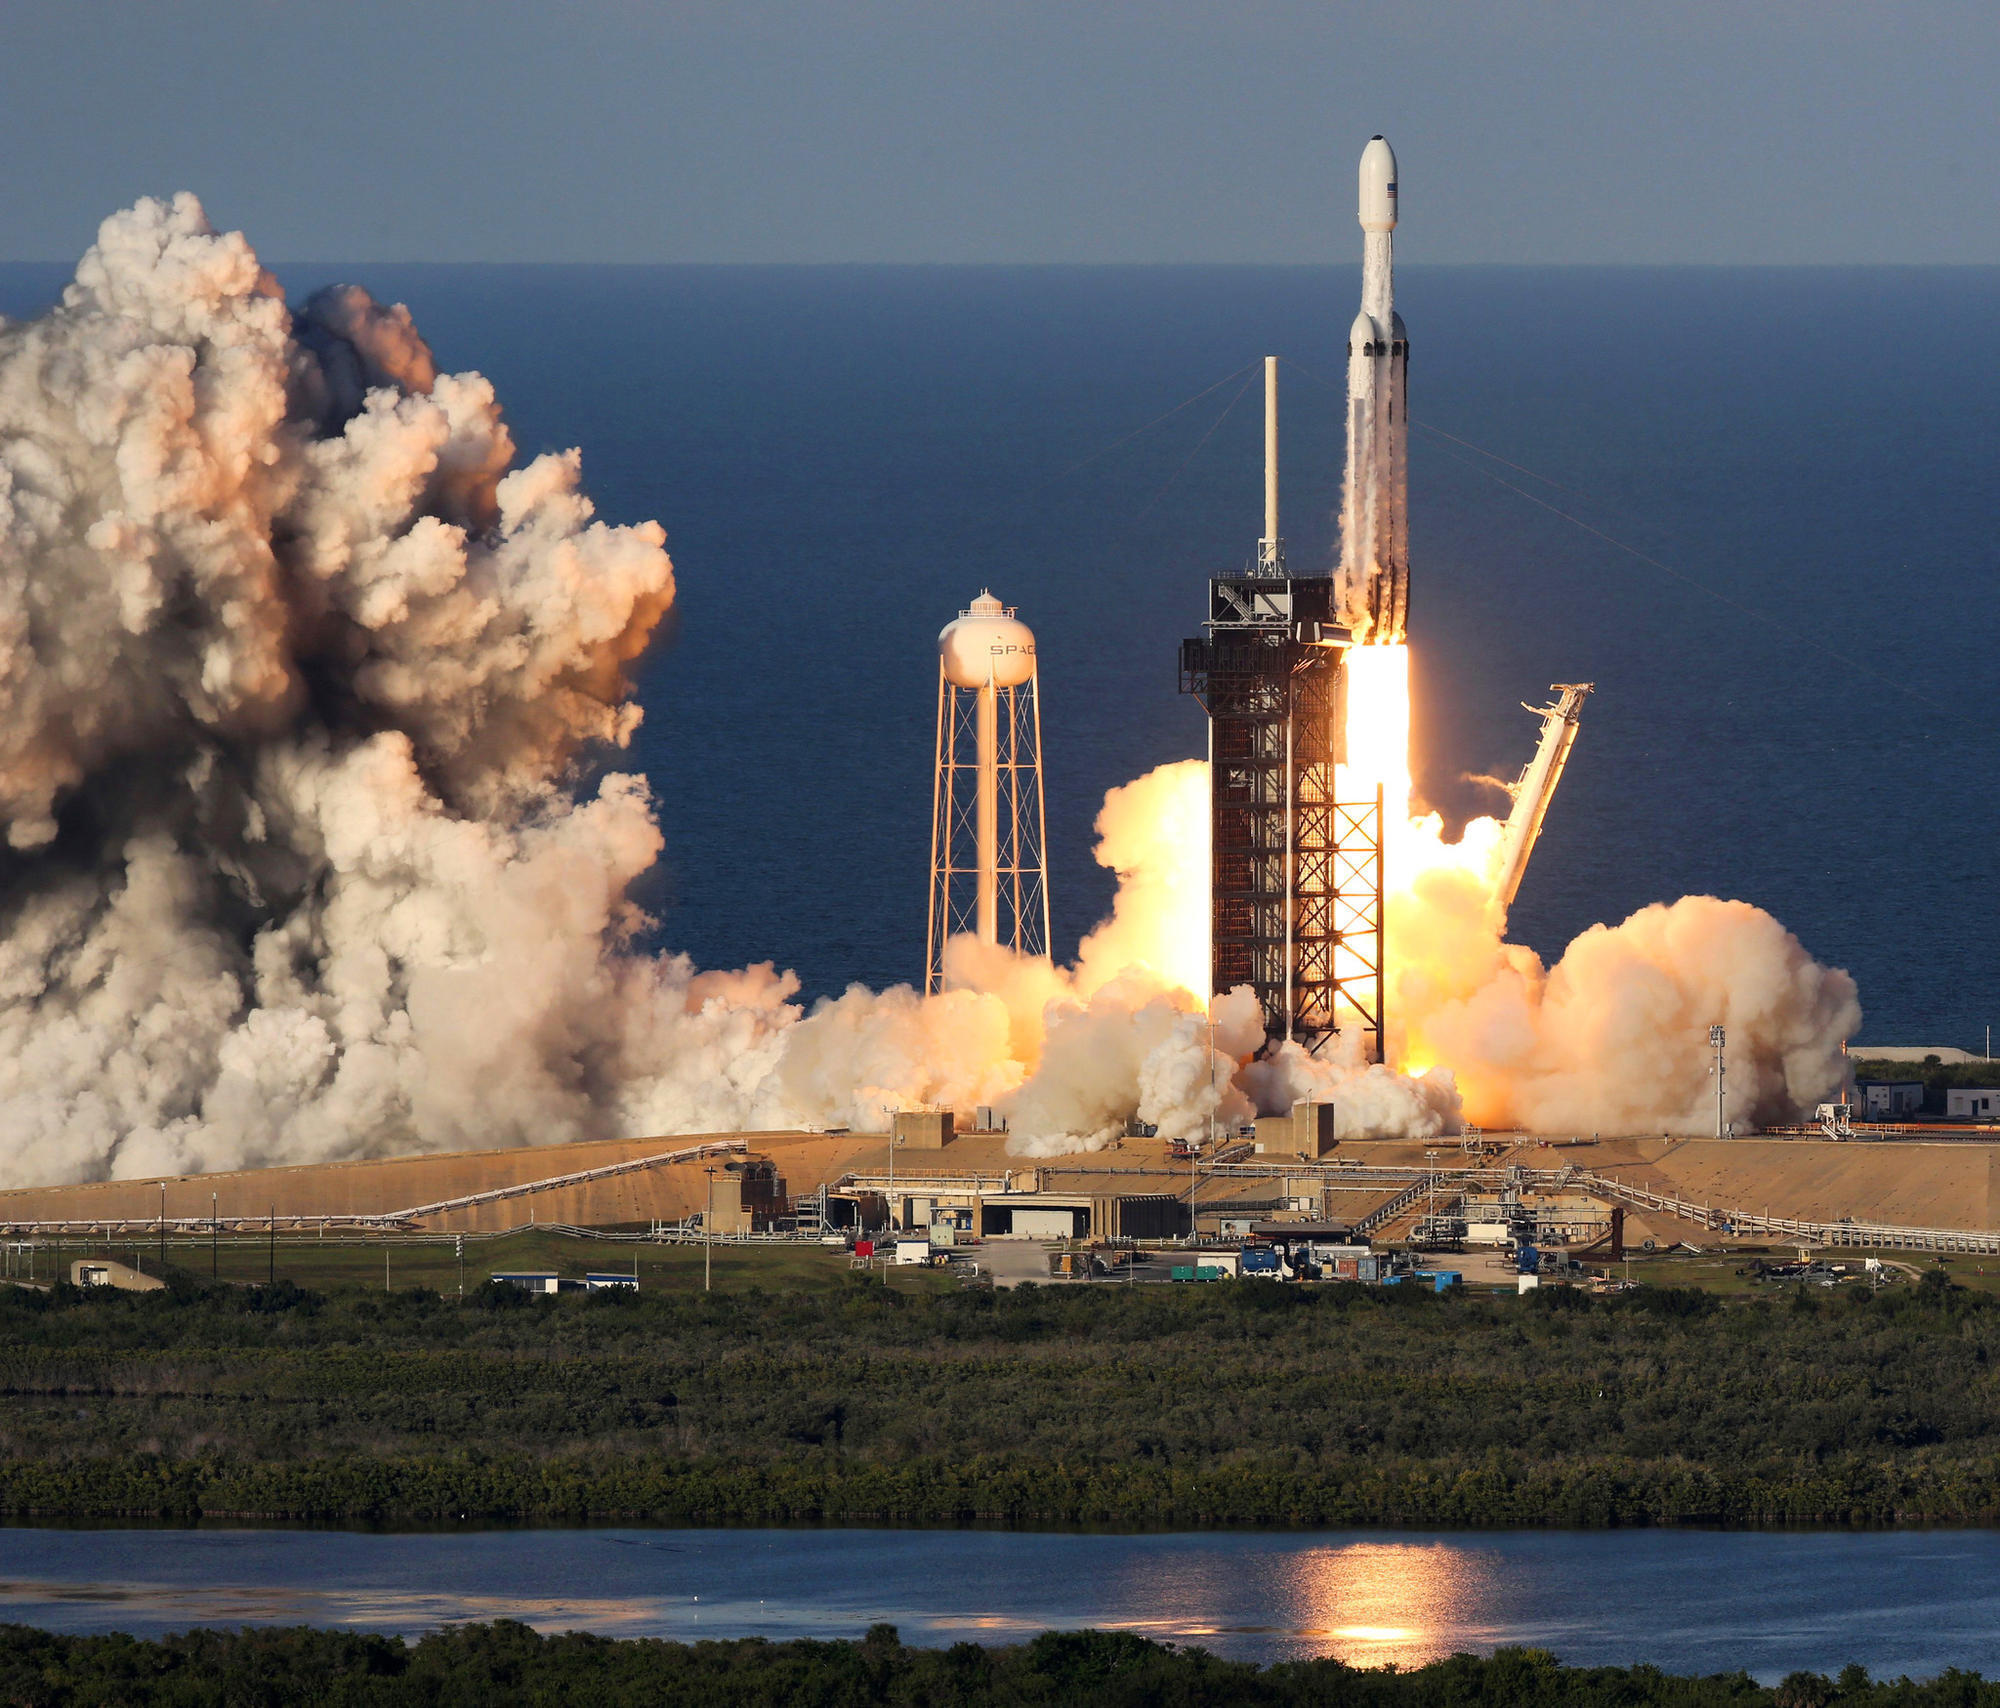 spacex dragon launch - HD1200×1025